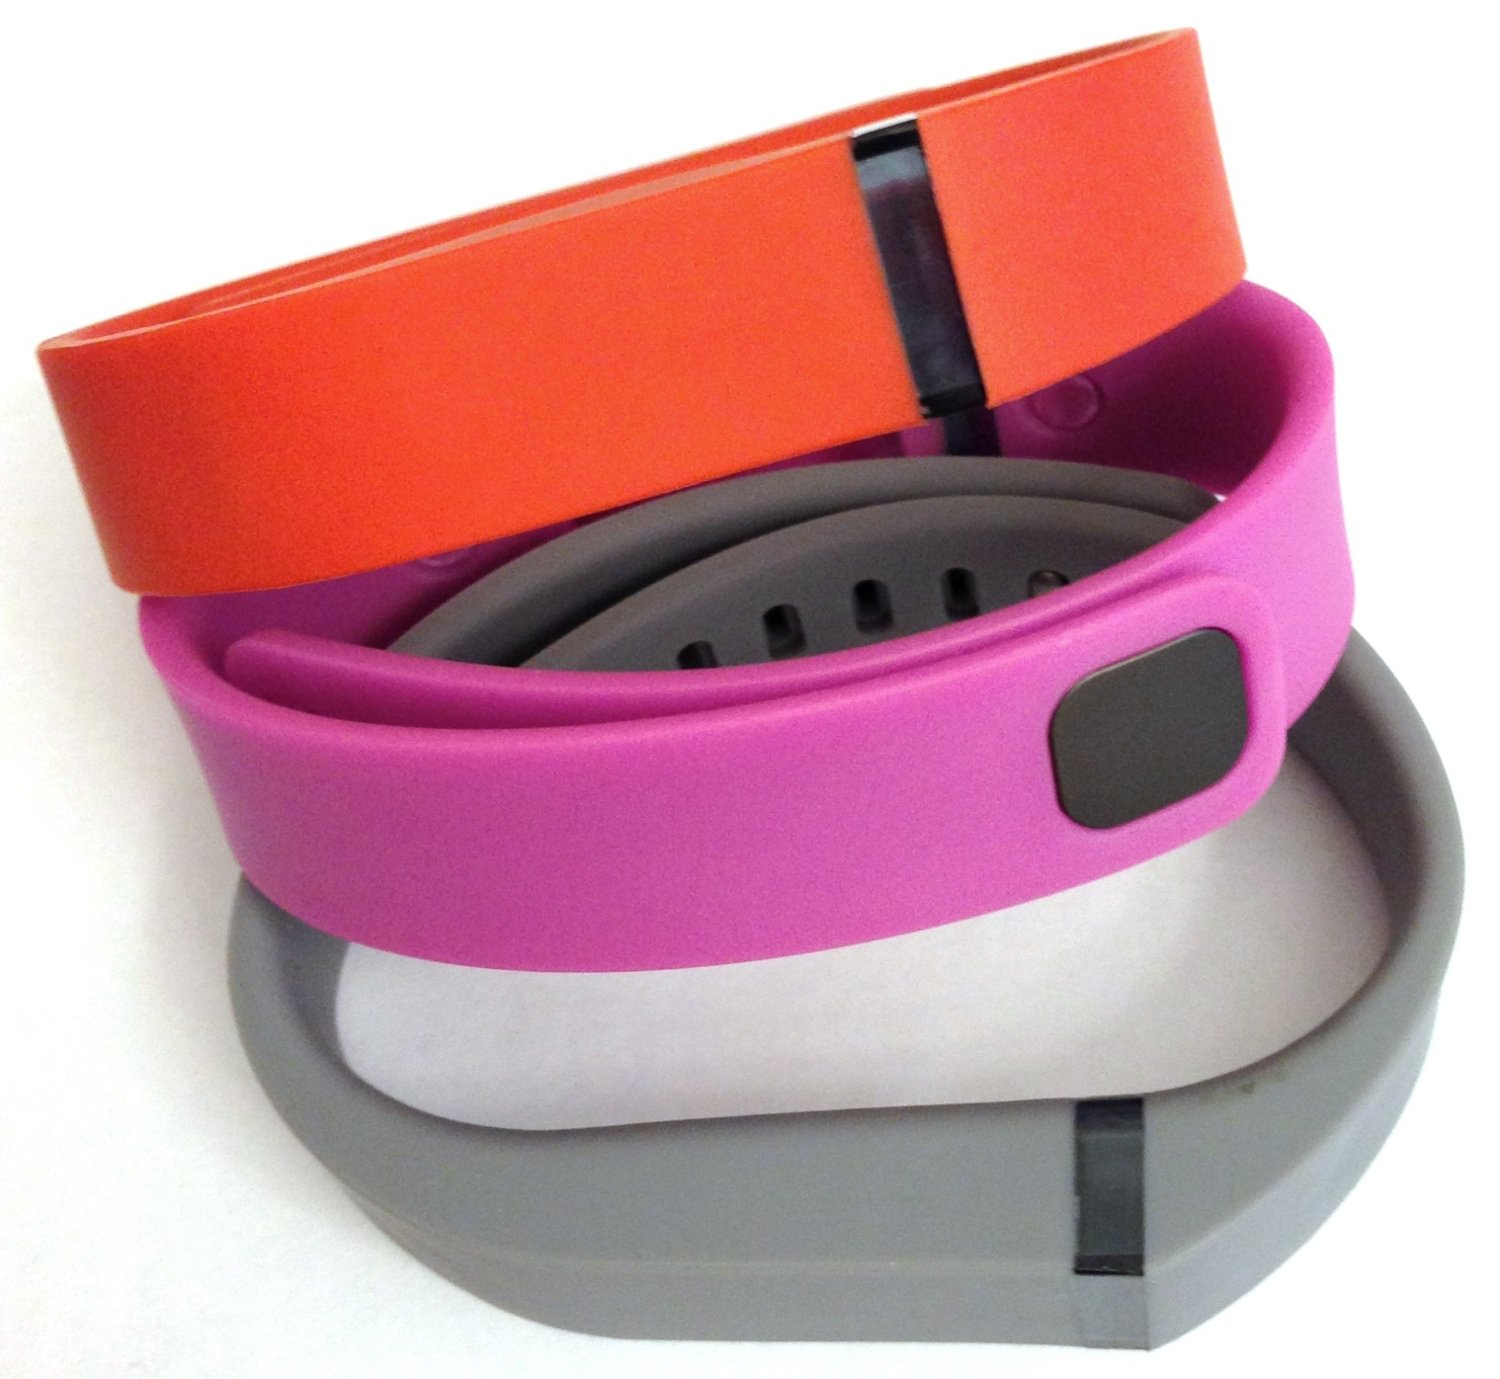 Set 3 Colors Large L 1pc Grey 1pc Red (Tangerine) 1pc Purple / Pink Replacement Bands With Clasp for Fitbit FLEX Only /No tracker/ Wireless Activity Bracelet Sport Wristband Fit Bit Flex Bracelet Sport Arm Band Armband